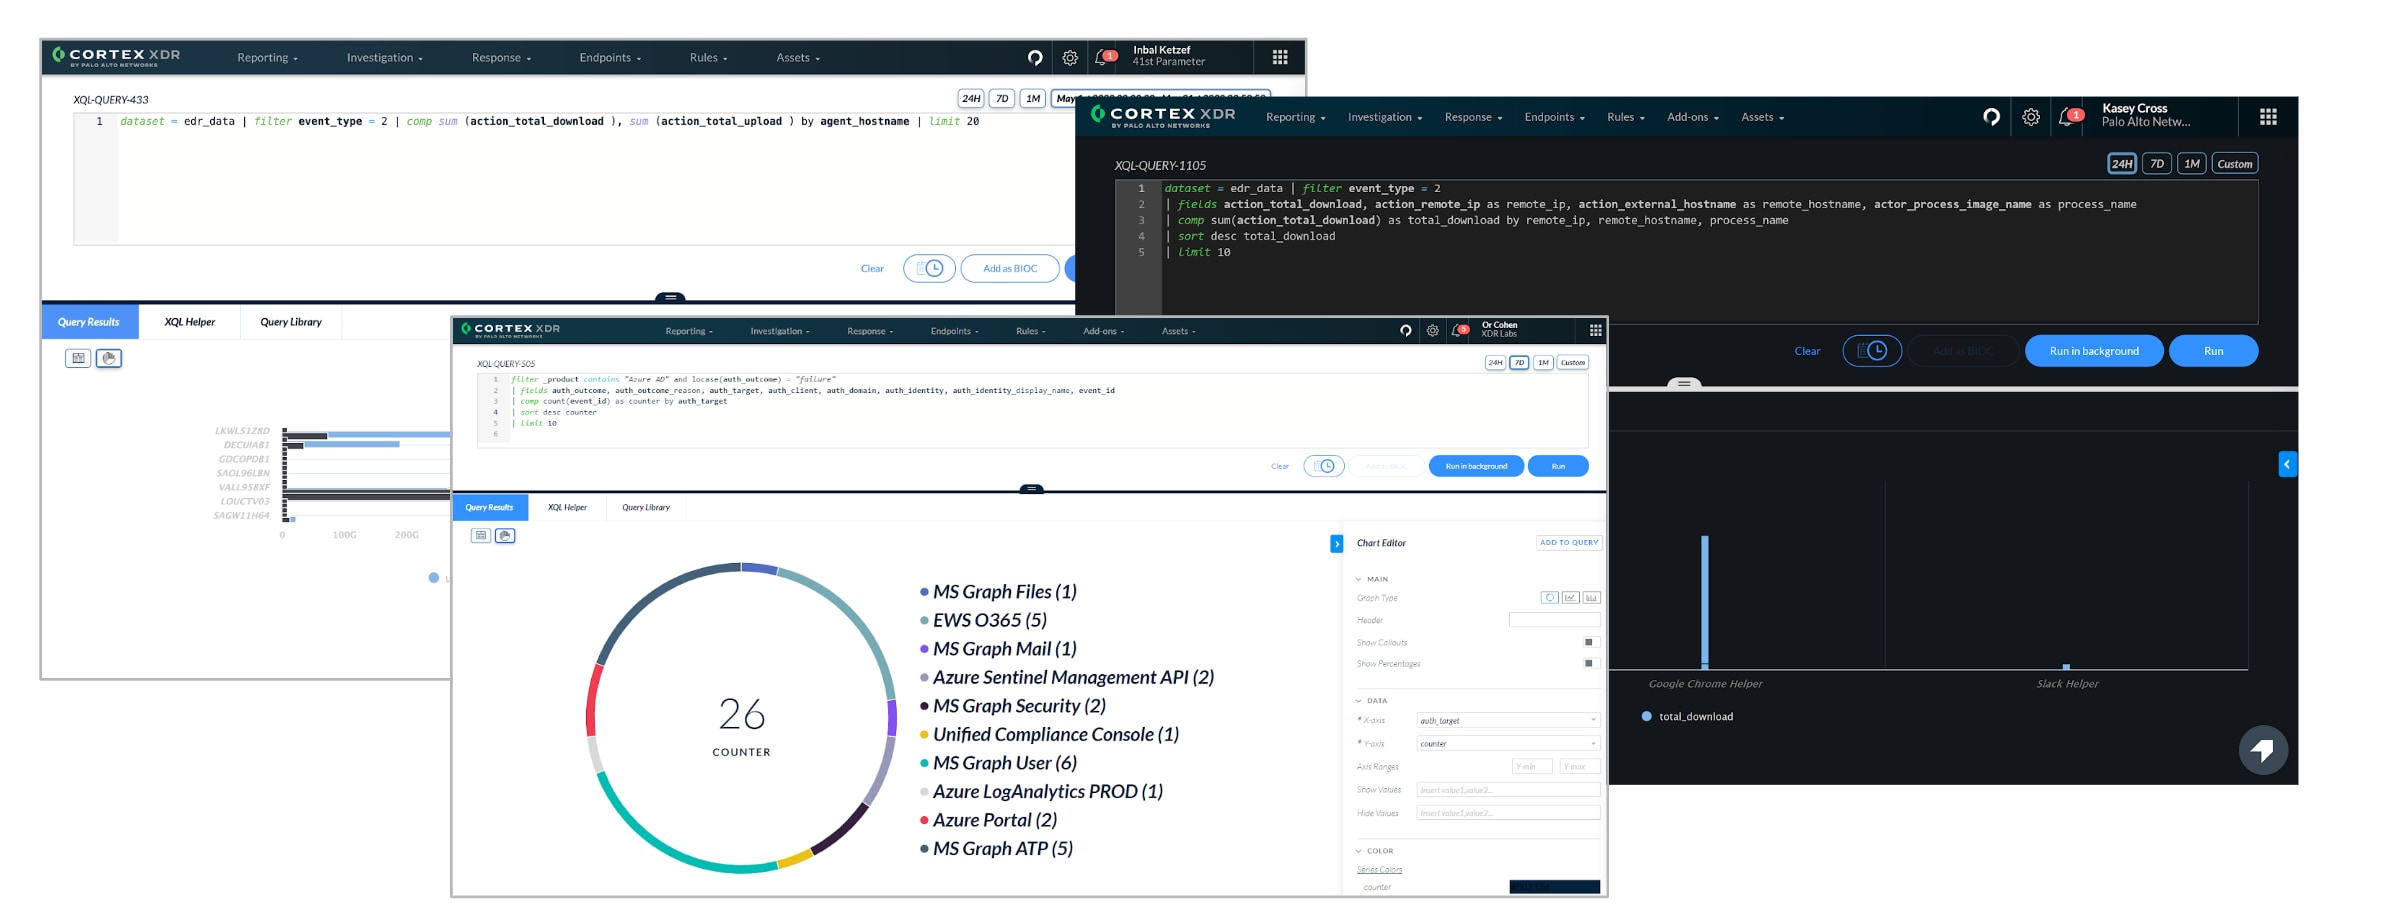 Display your XQL query results as charts or create new query-based widgets in the Cortex XDR dashboard to view graphical representation of your data.